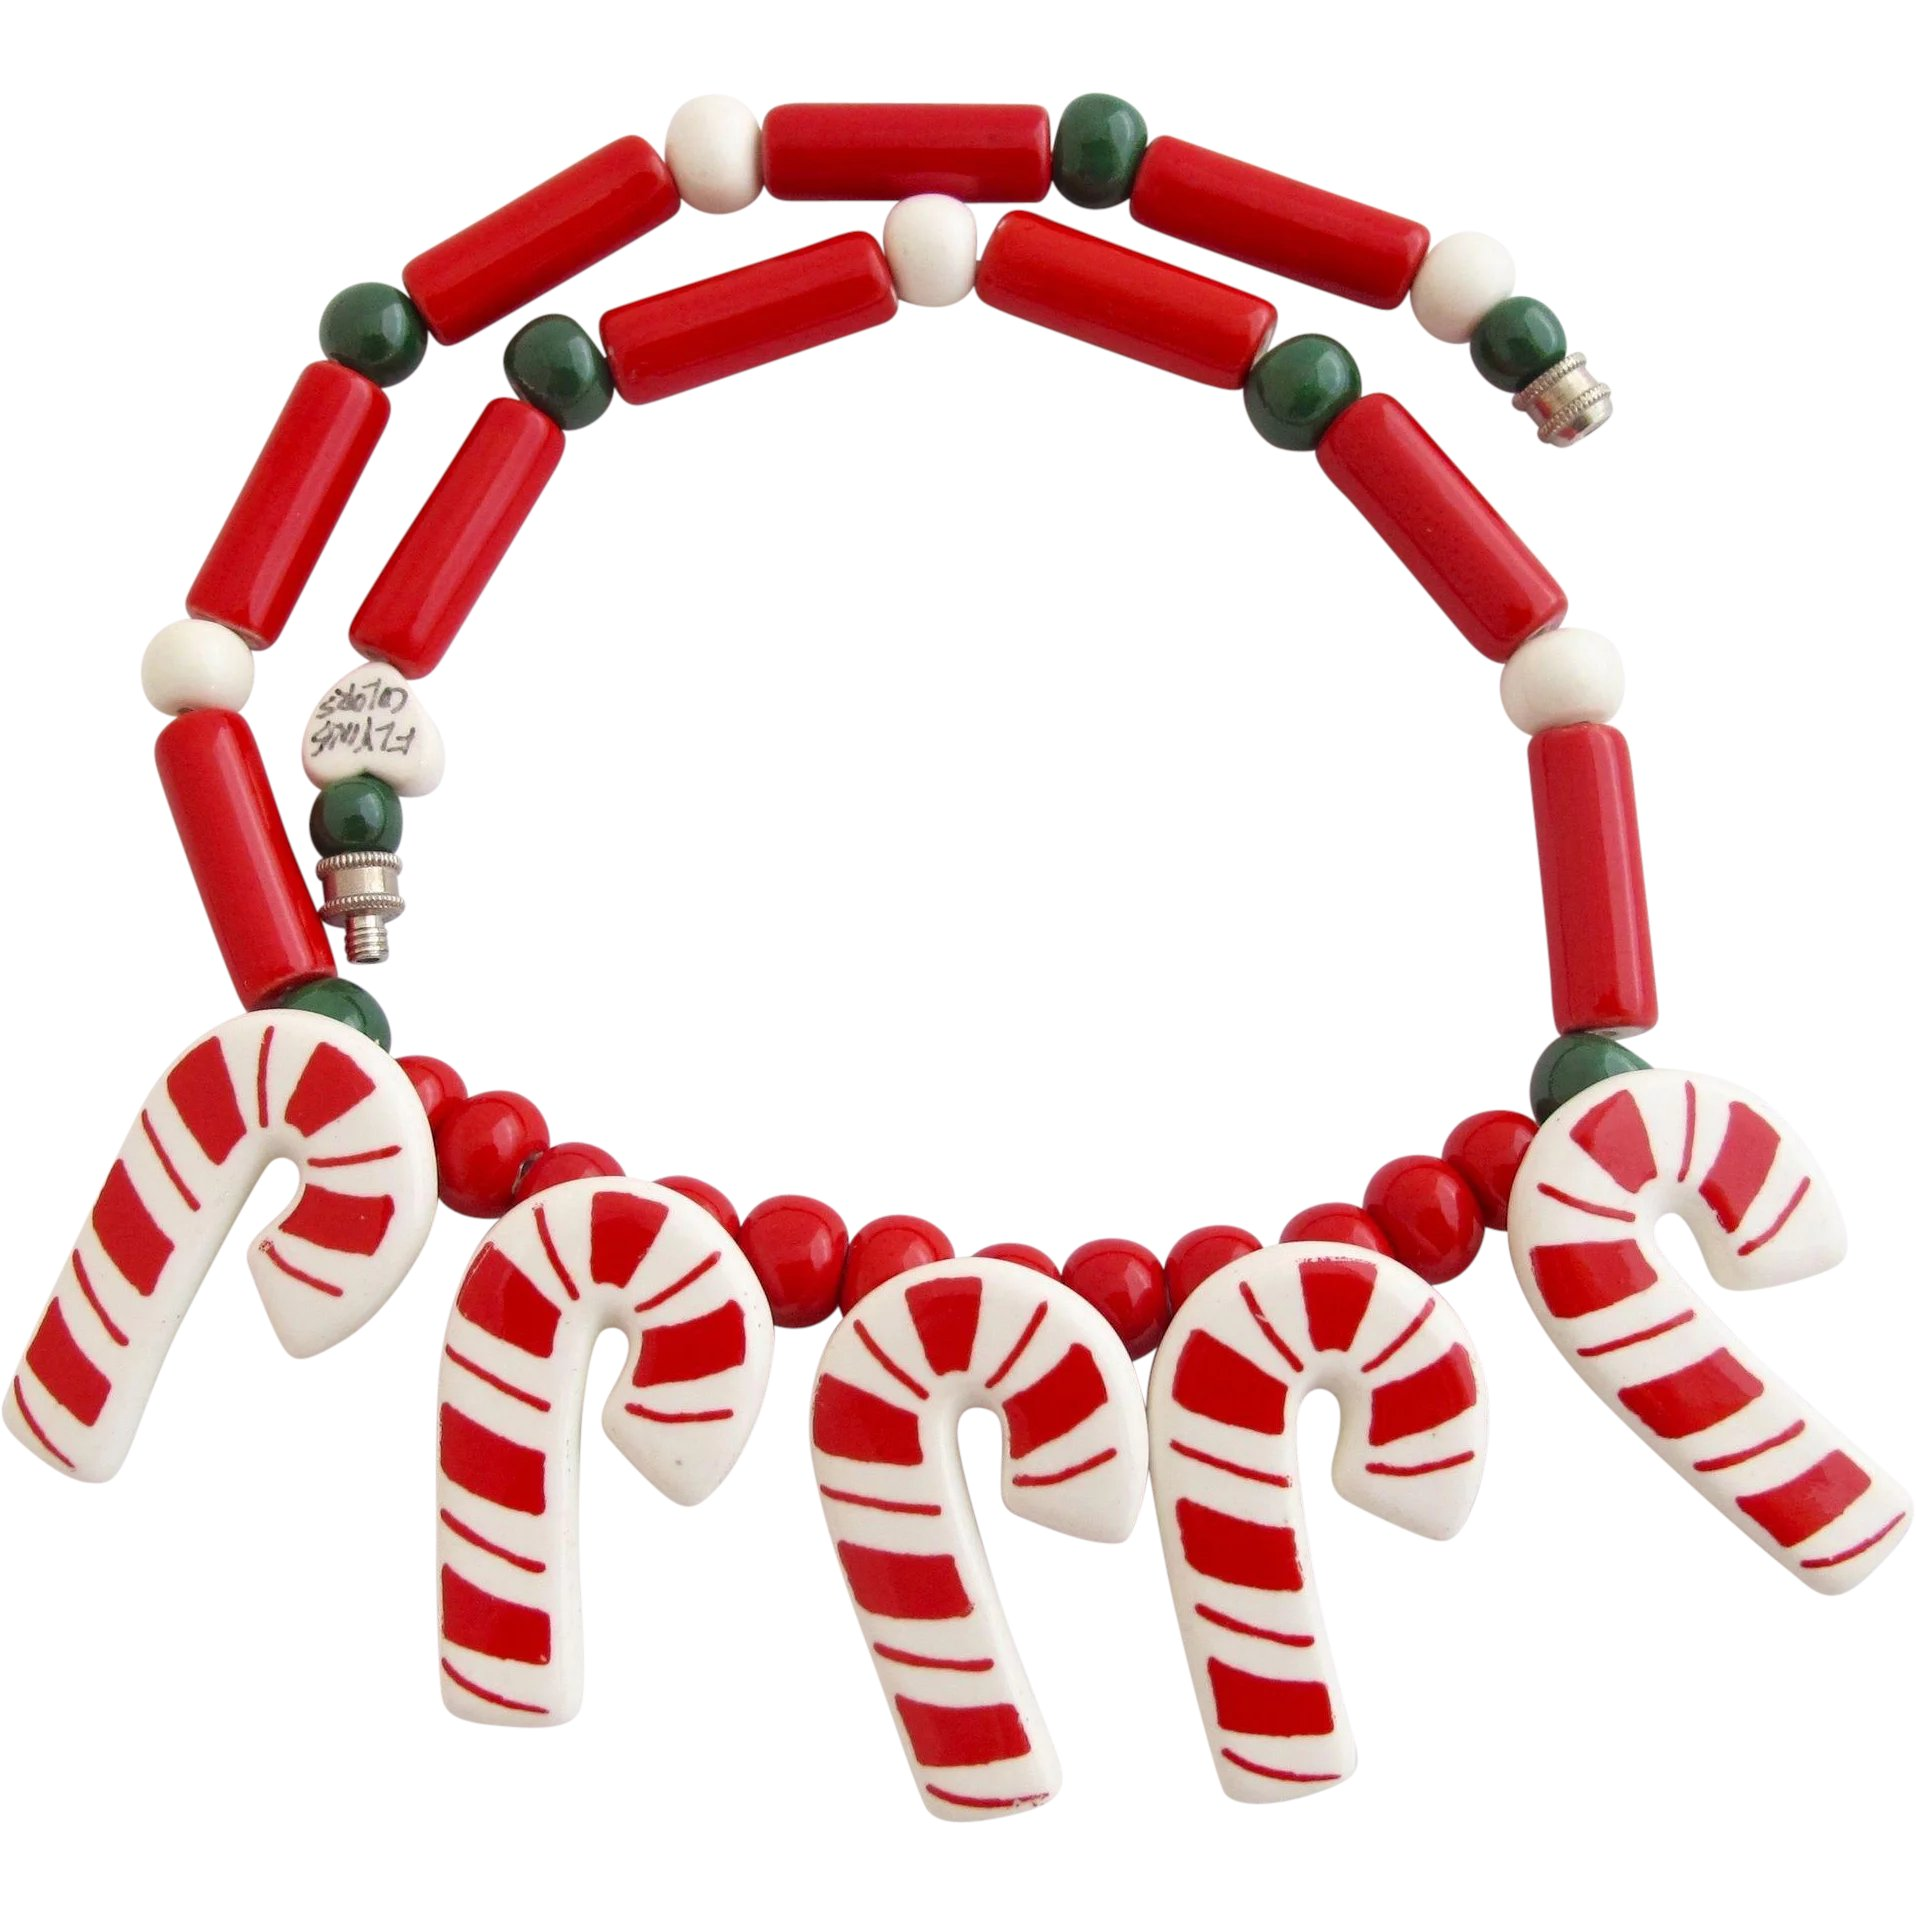 3143808ab024 Vintage Flying Colors Candy Canes Ceramic Necklace   2Hearts Jewelry    Accessories